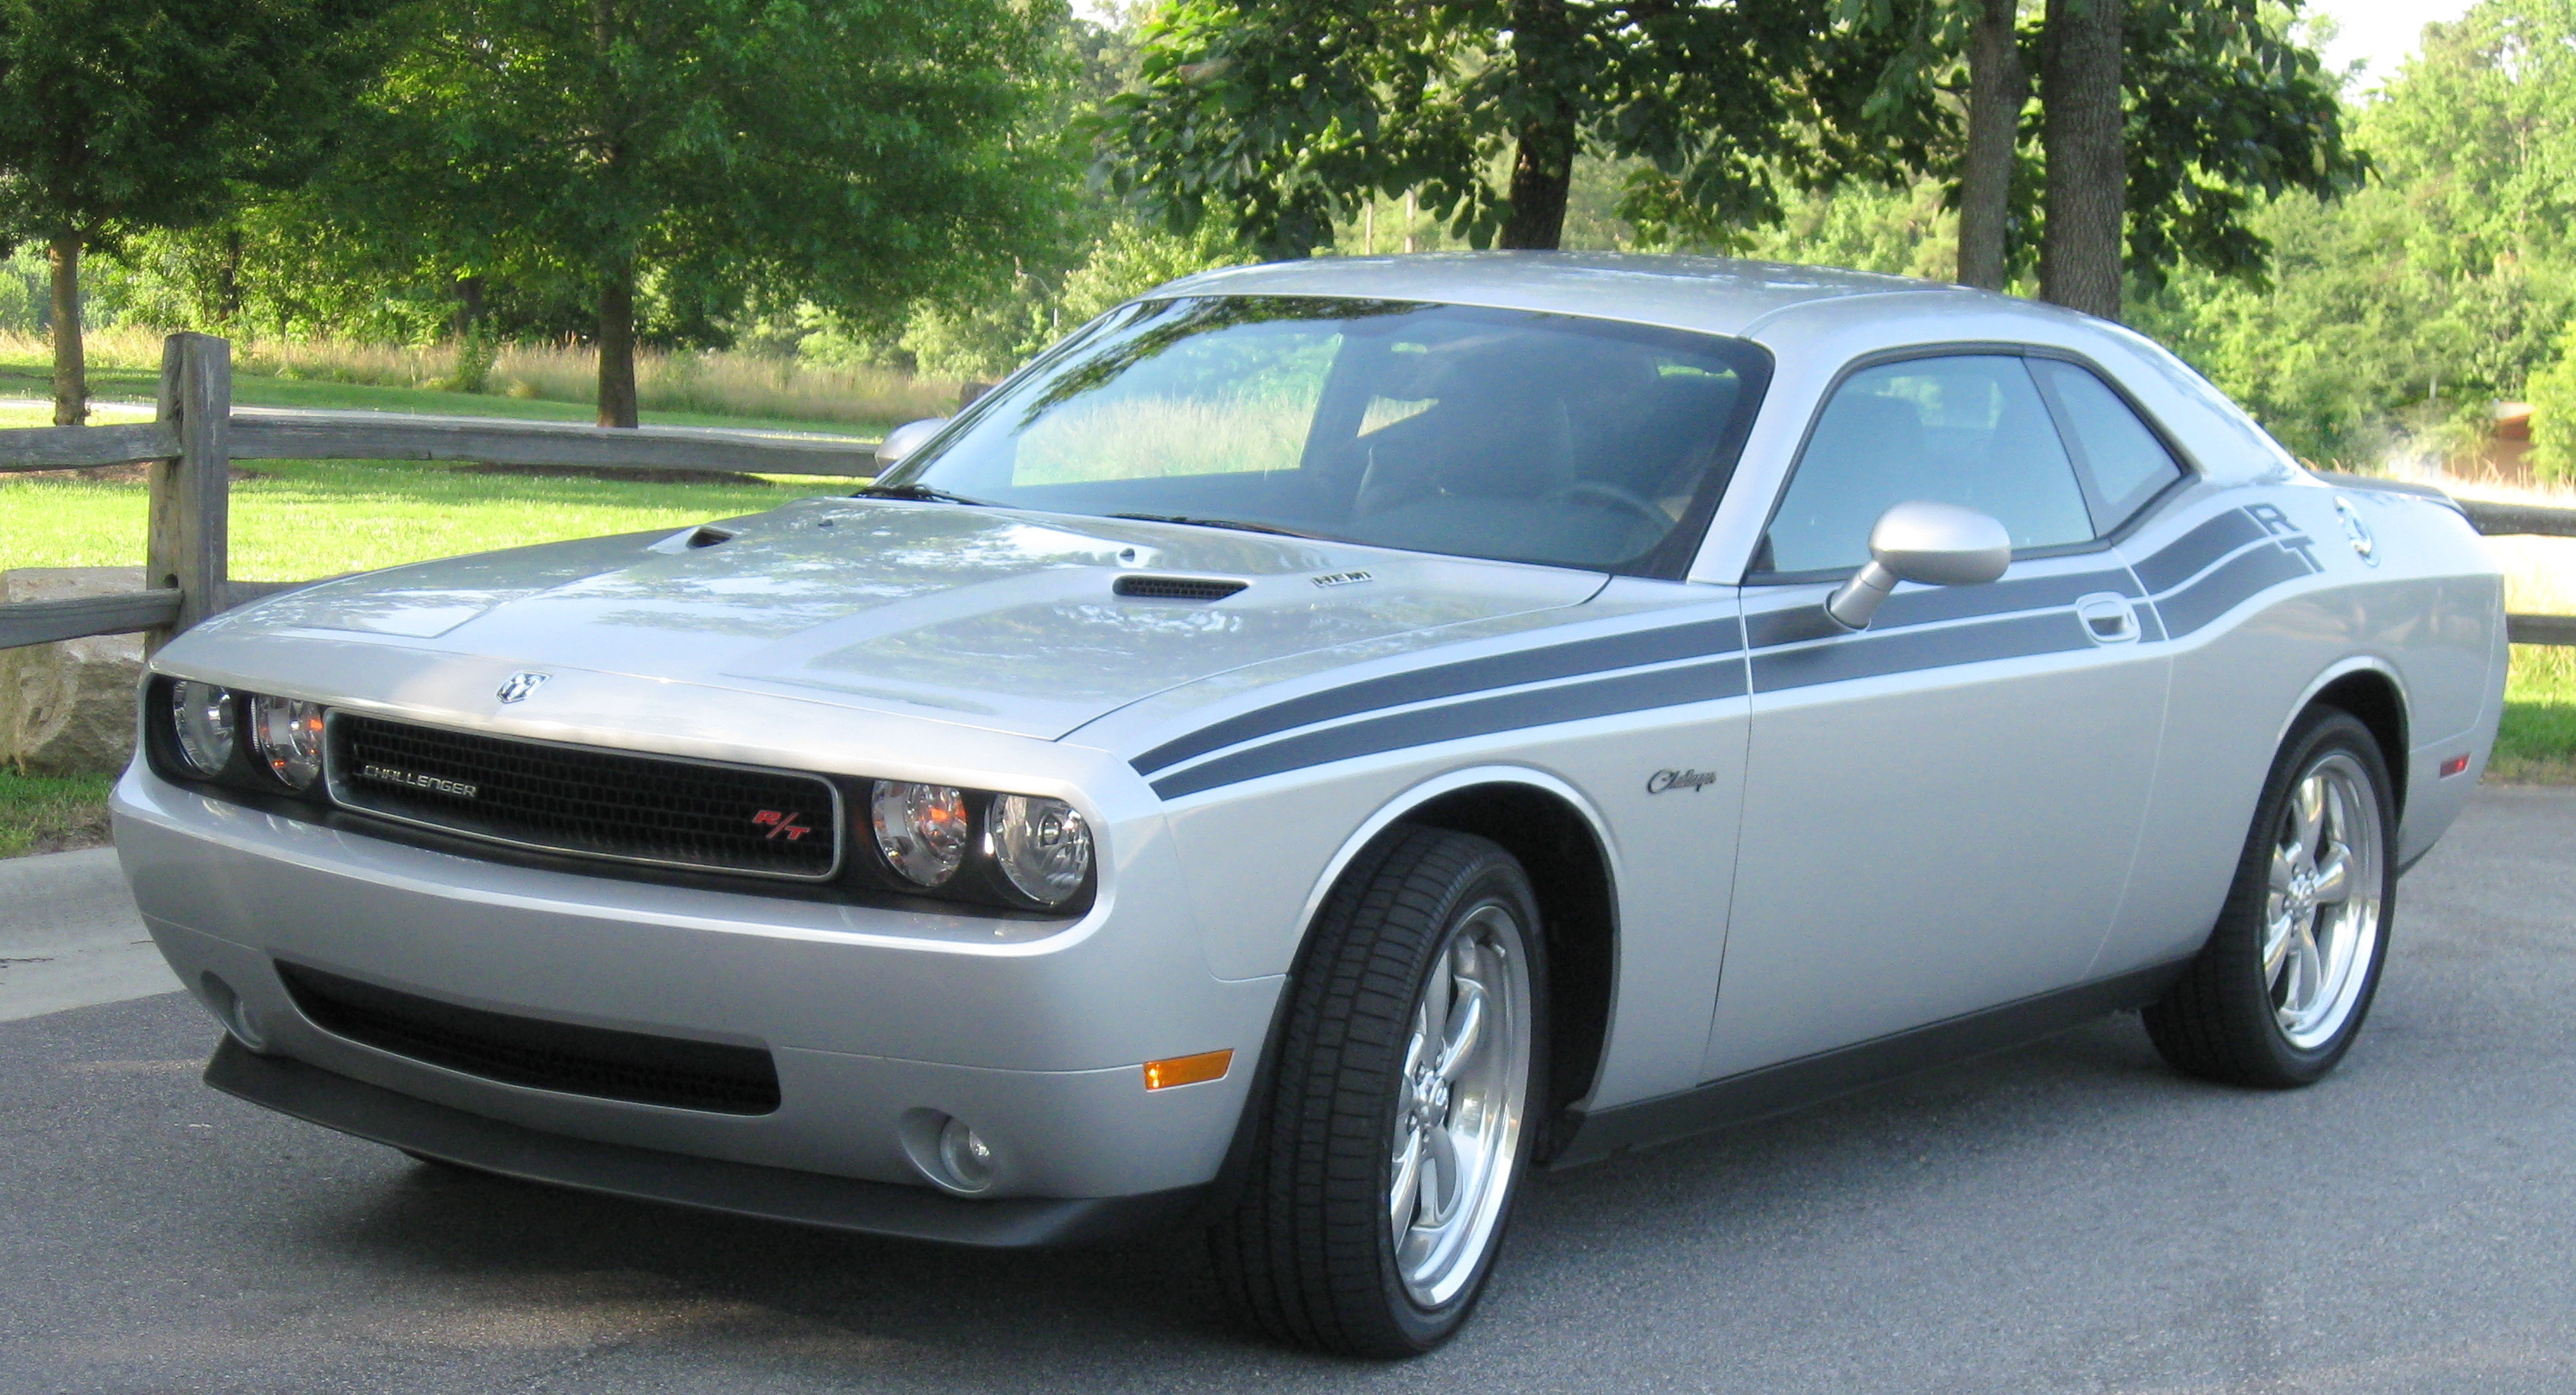 http://upload.wikimedia.org/wikipedia/commons/9/9d/2010_Dodge_Challenger_RT_Classic.JPG